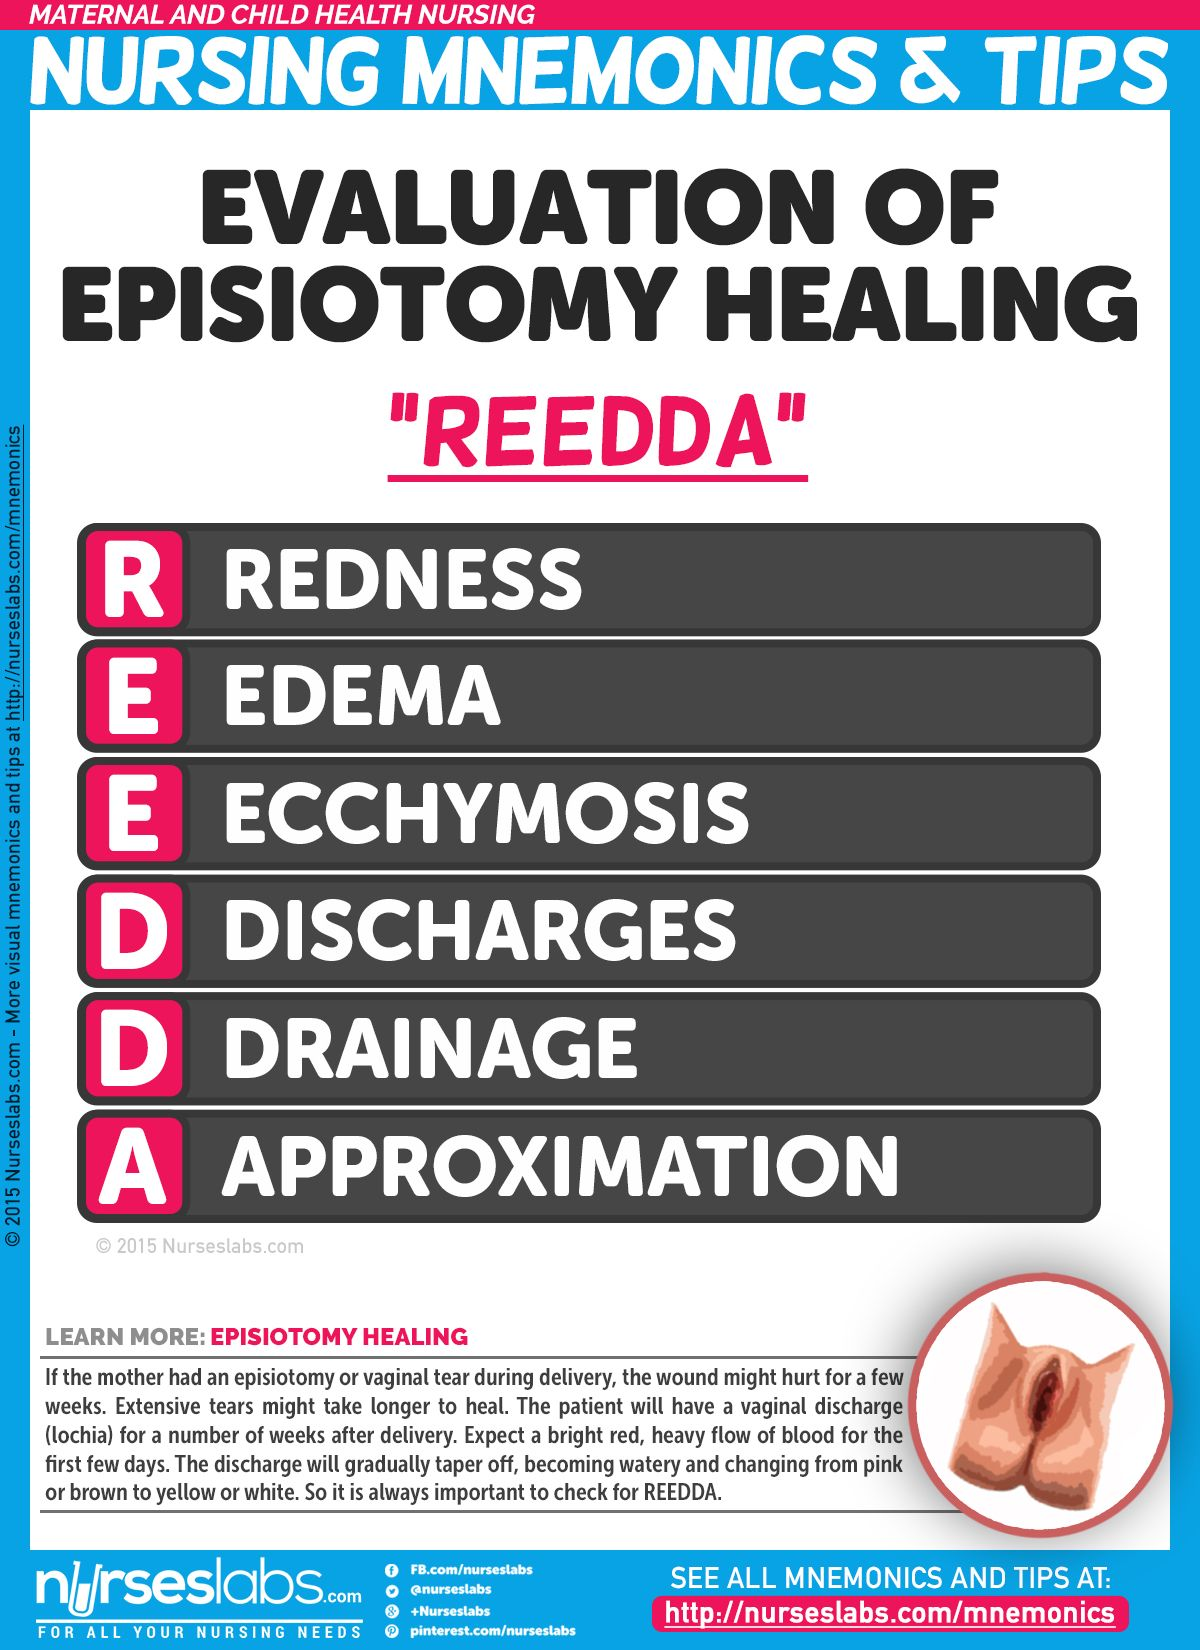 Evaluation of episiotomy healing maternal and child